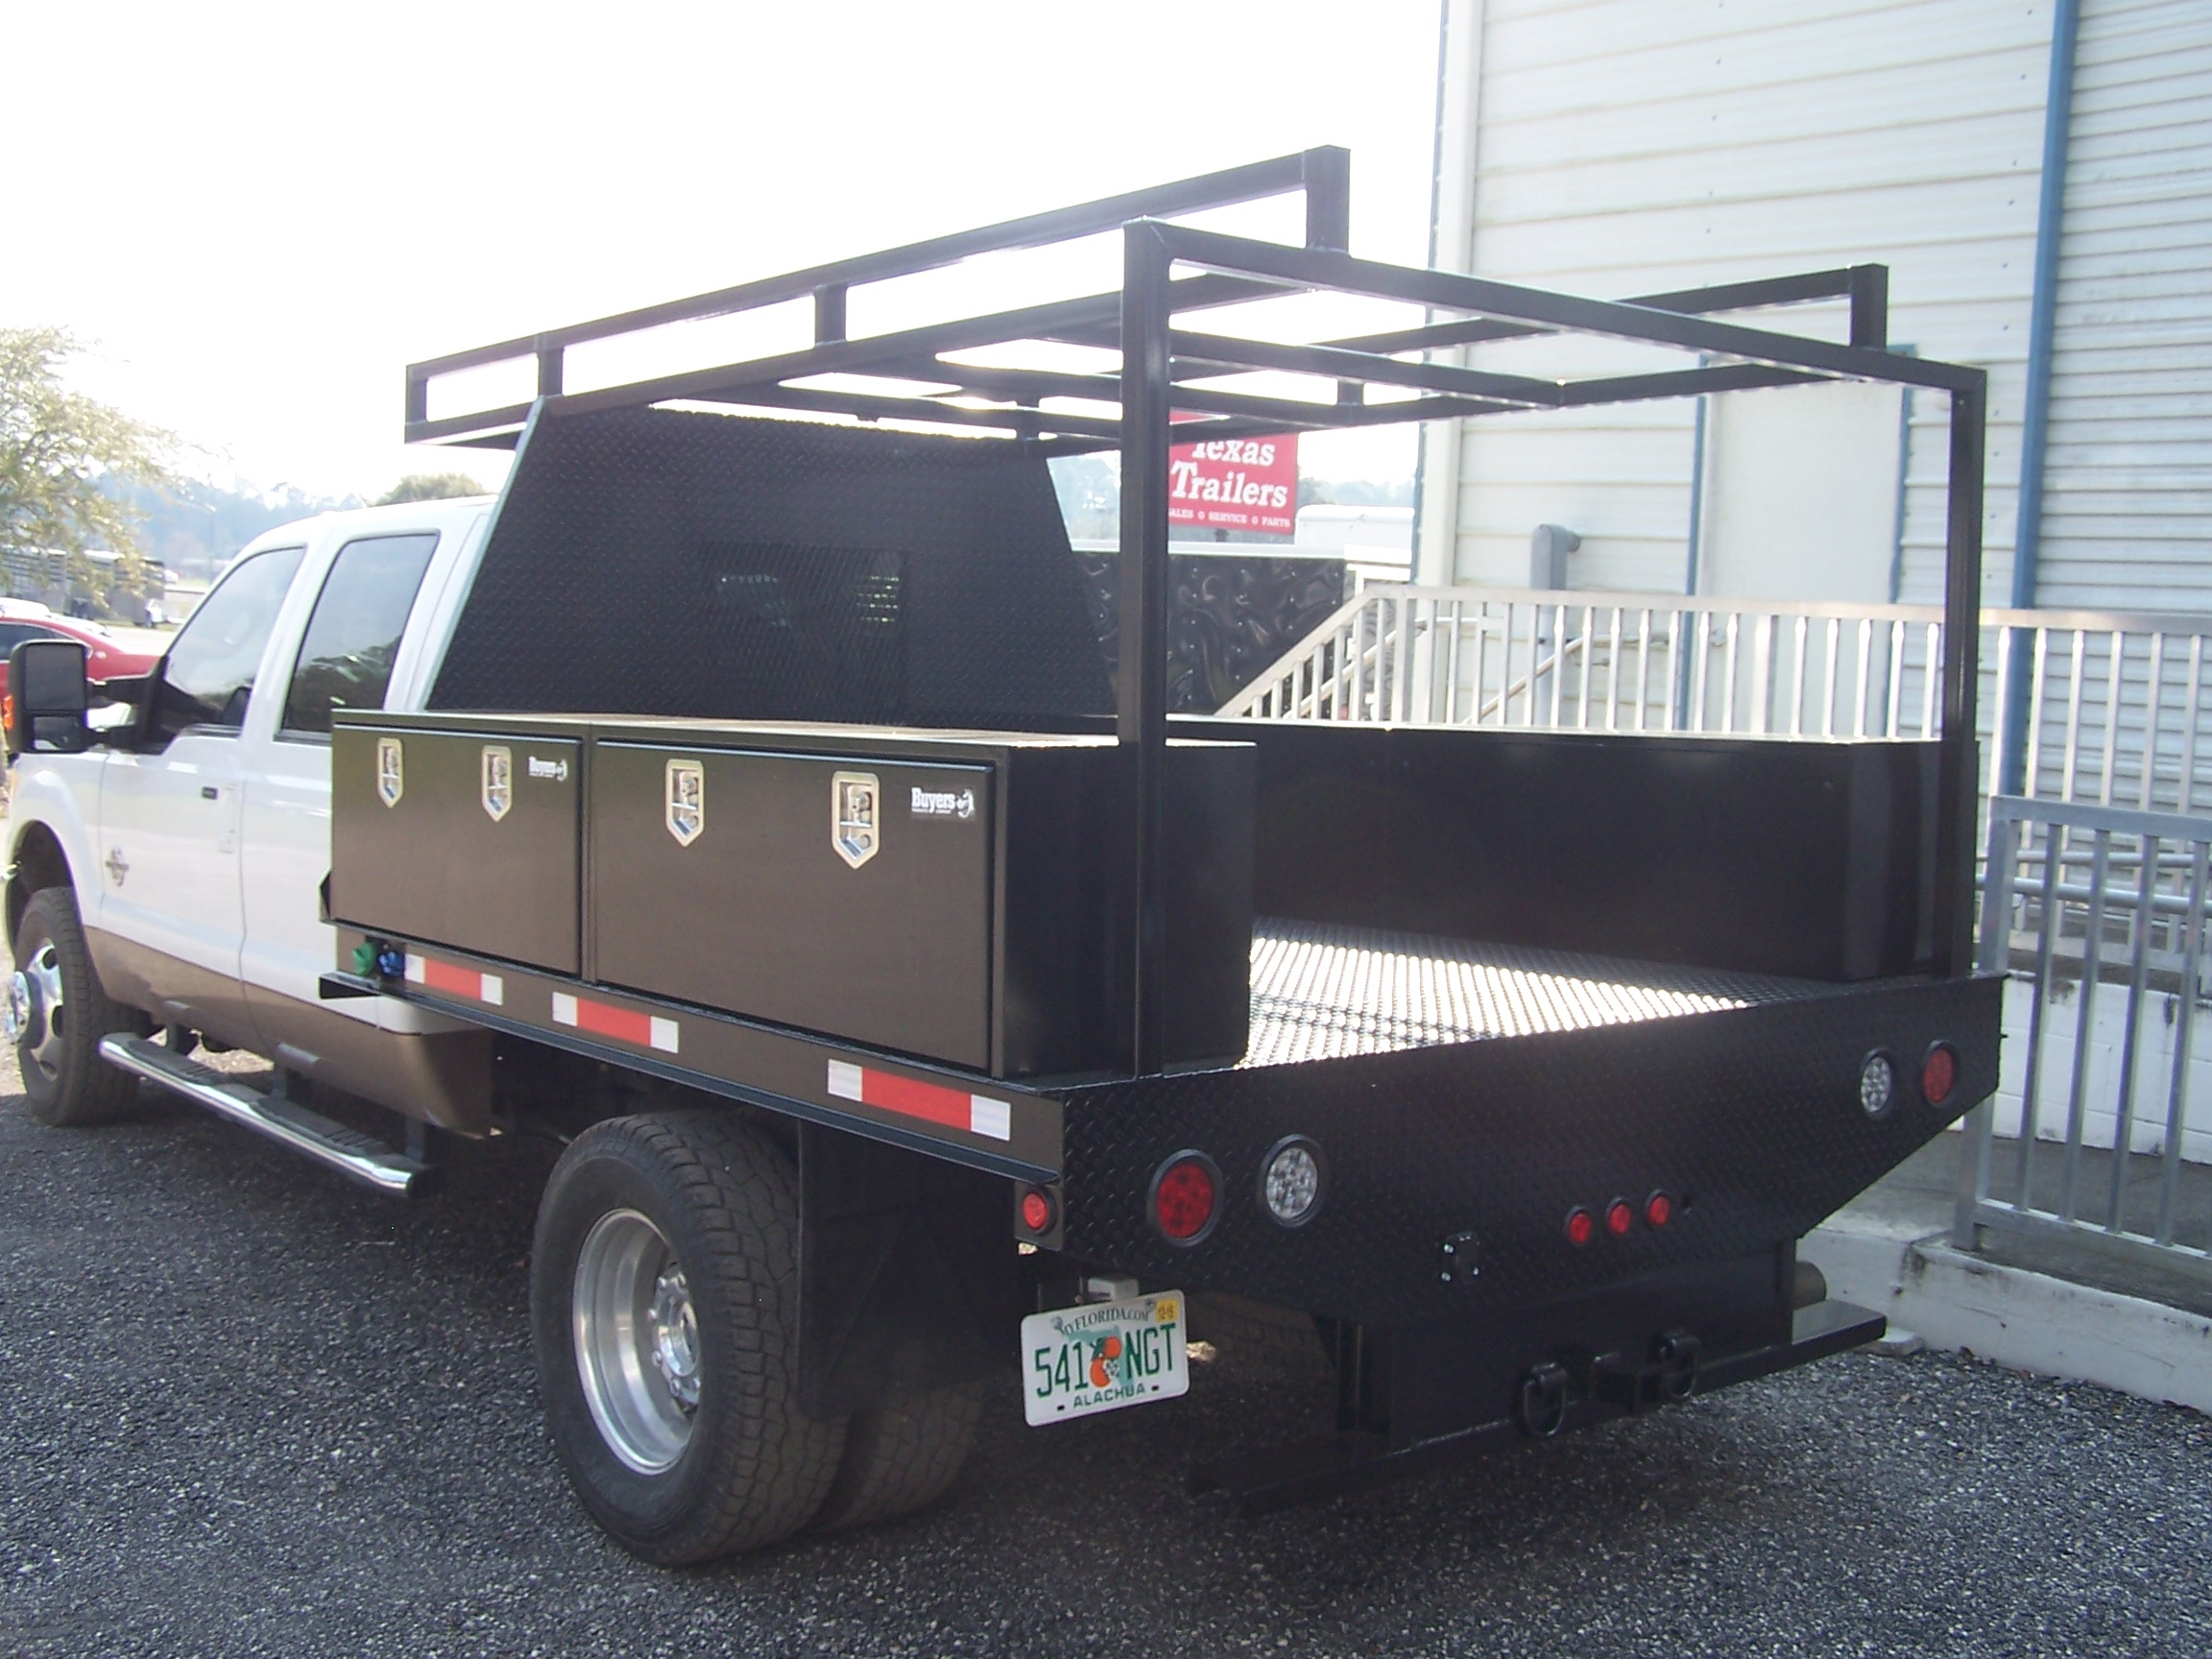 Trailer Hitches For Sale >> Custom Truck Beds | Texas Trailers | Trailers For Sale ...